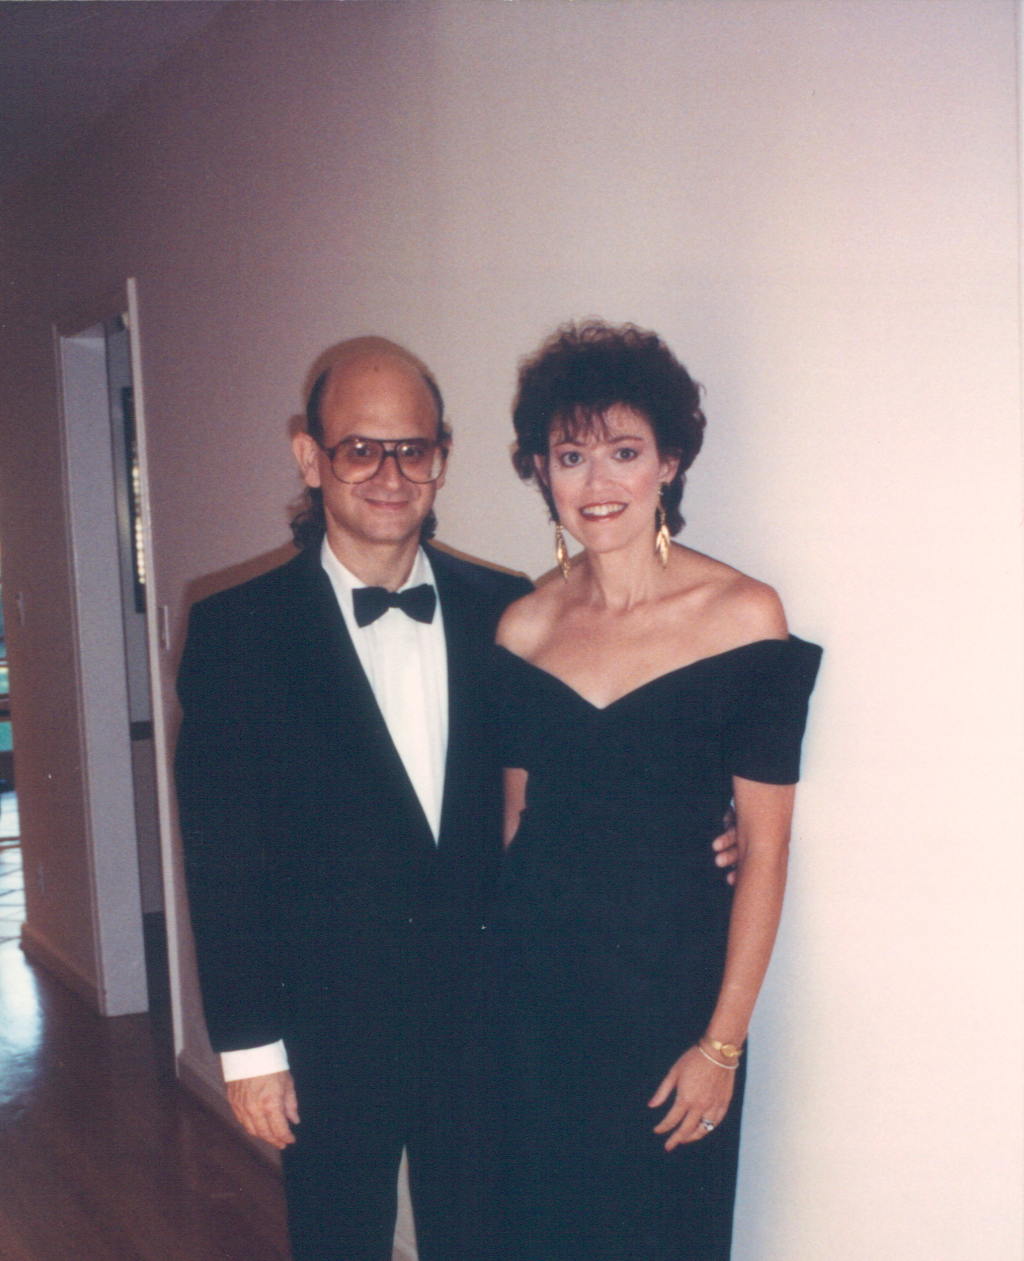 Bonnie & David Frank, 1st EMMY nomination, 1990